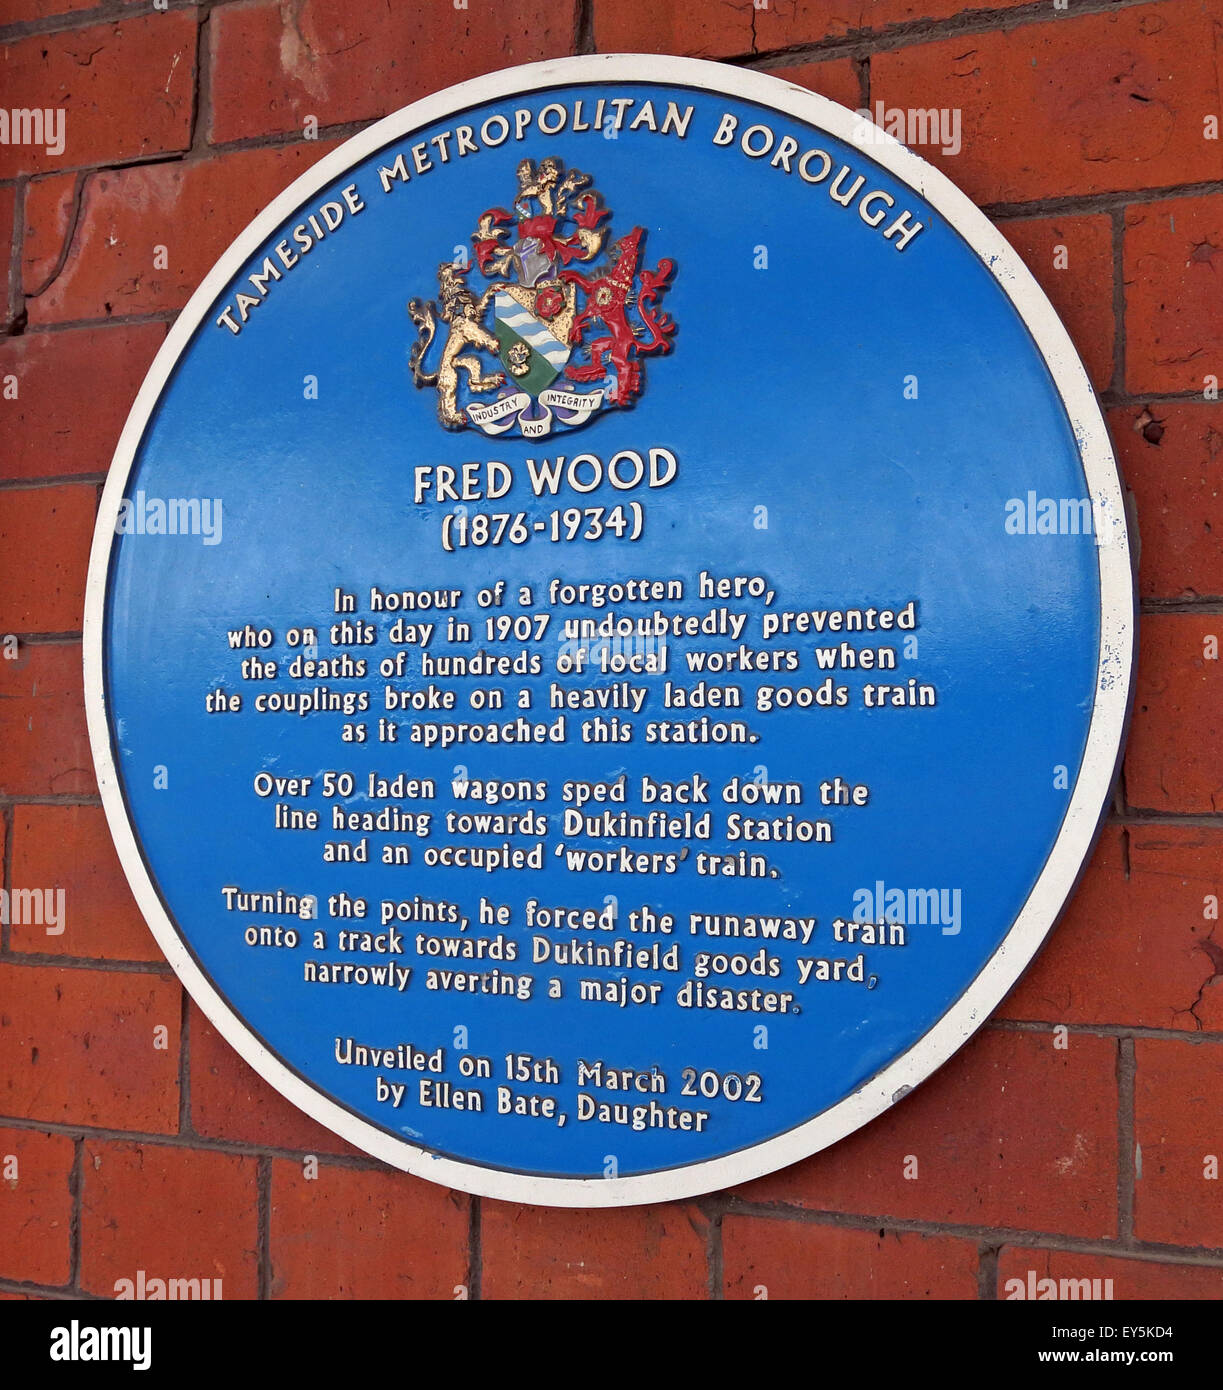 Fred Wood Tameside Blue Plaque,Stalybridge Railway station, Lancashire, England, UK - Stock Image